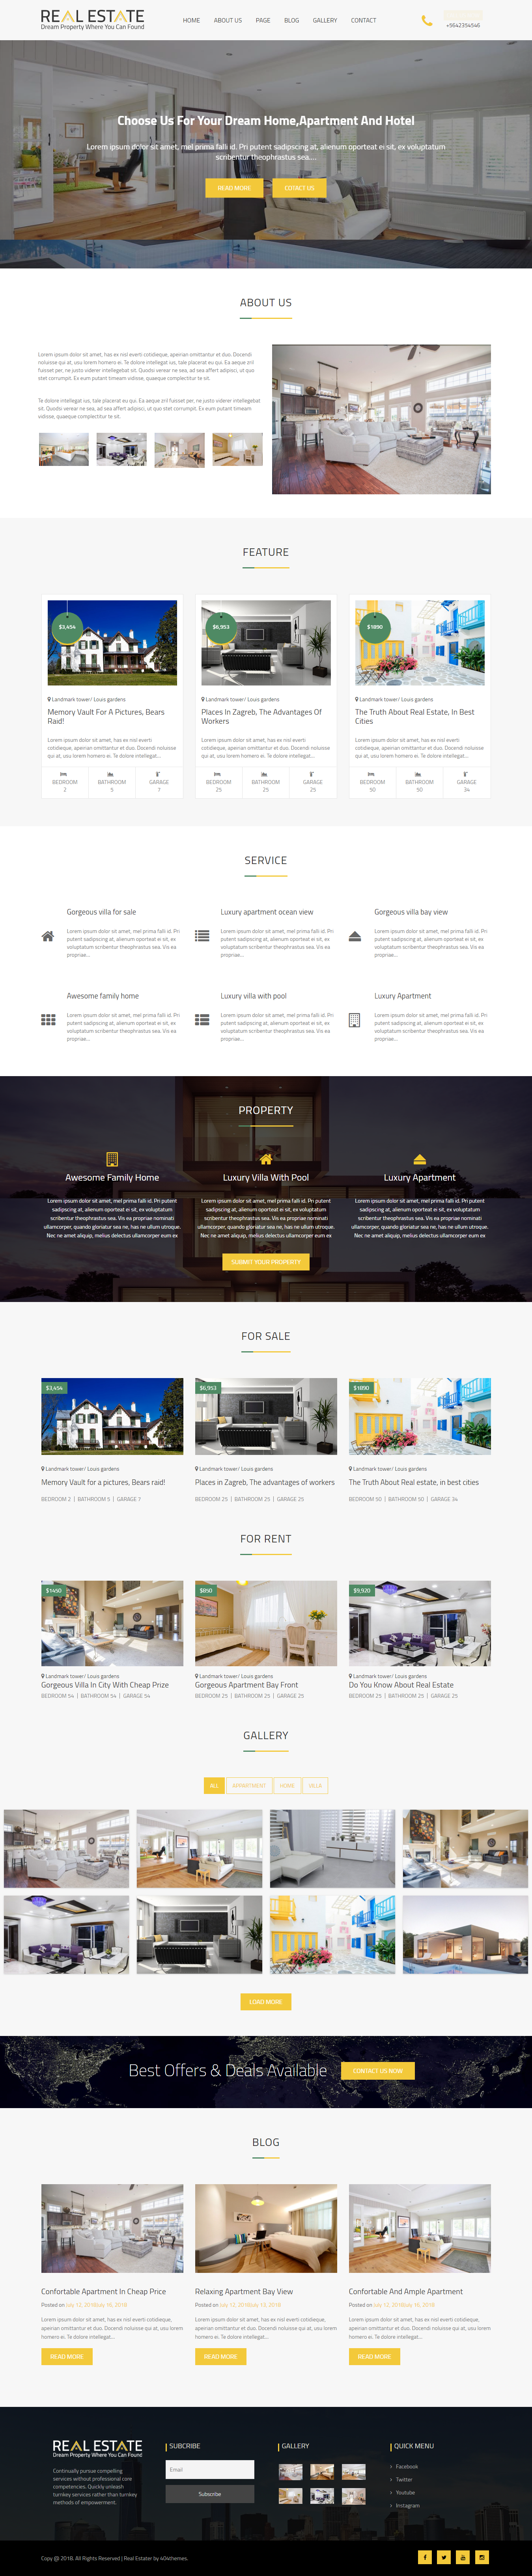 real estater best free home rental property wordpress theme - 10+ Best Free Home Rental and Property WordPress Themes